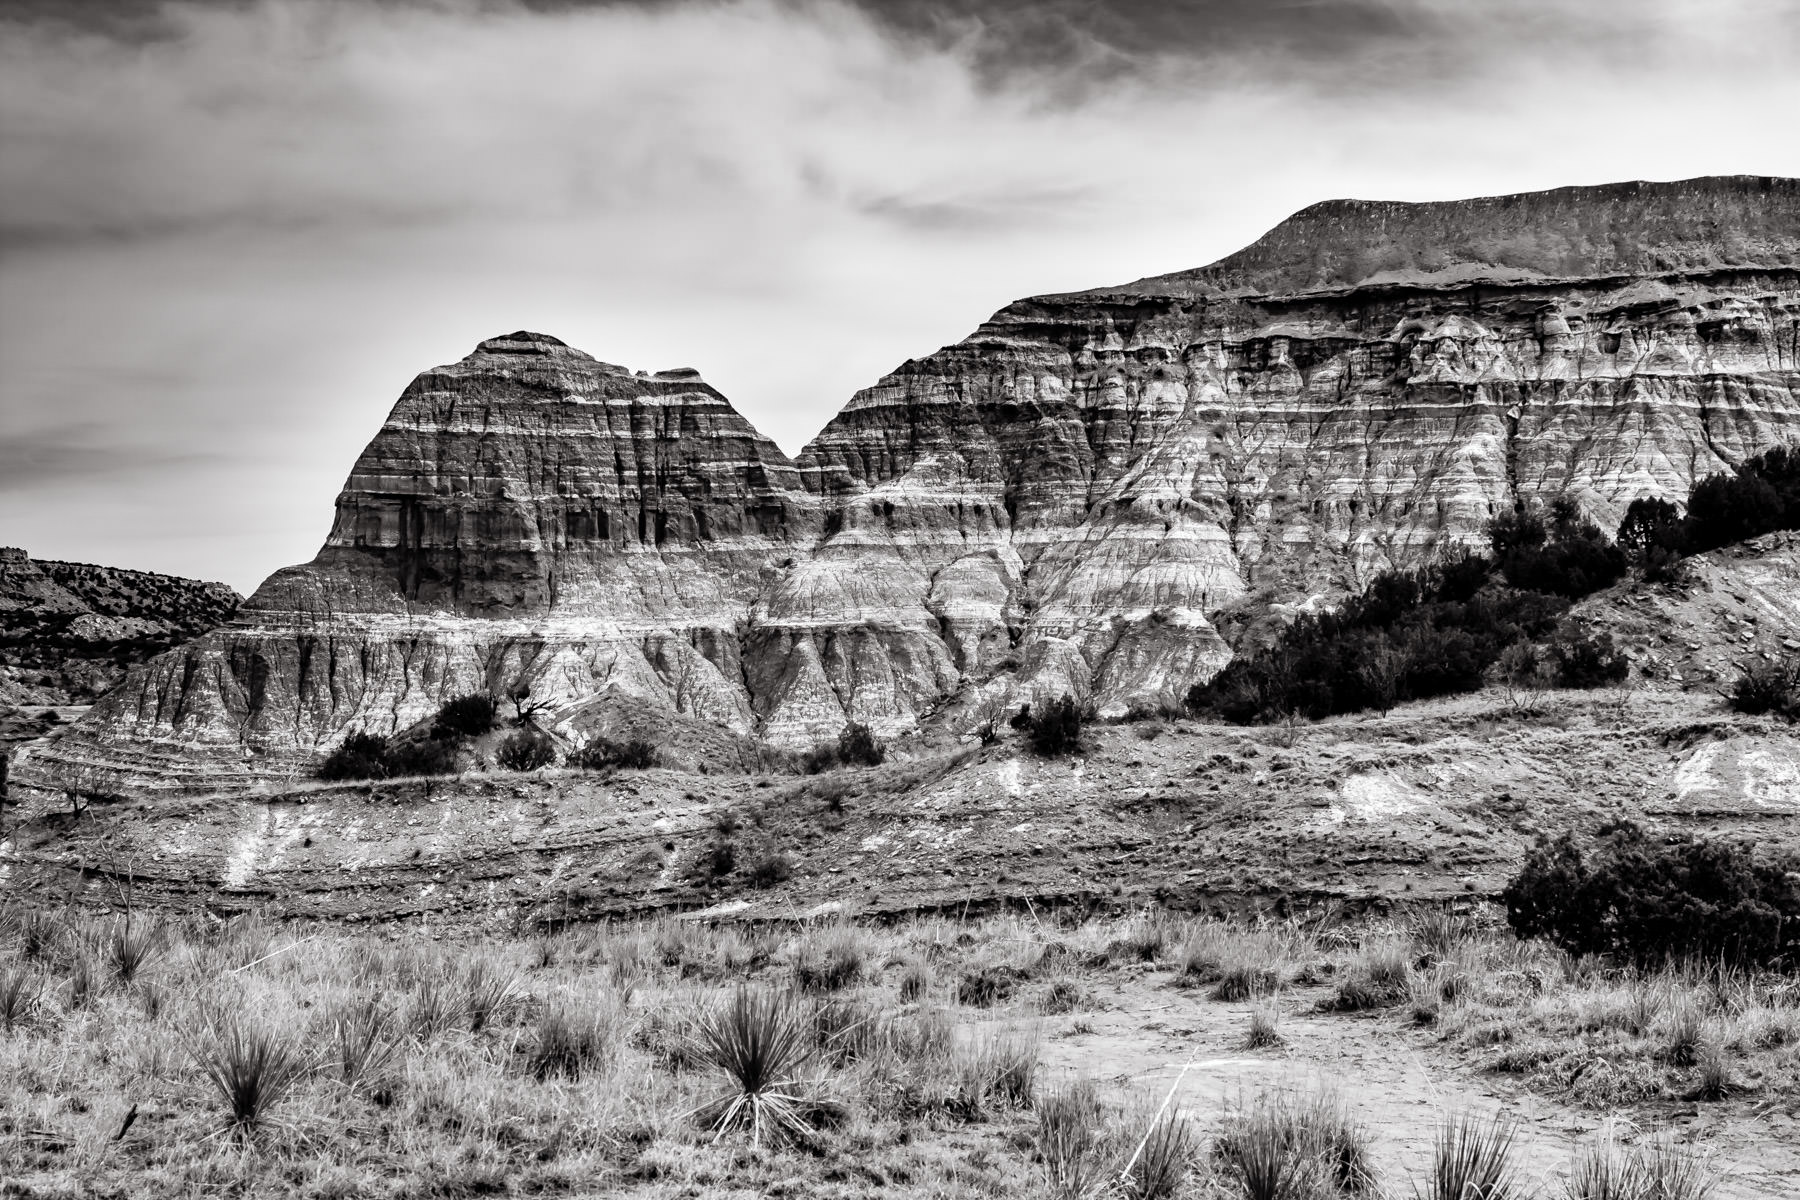 A rocky desert landscape at Palo Duro Canyon, Texas.